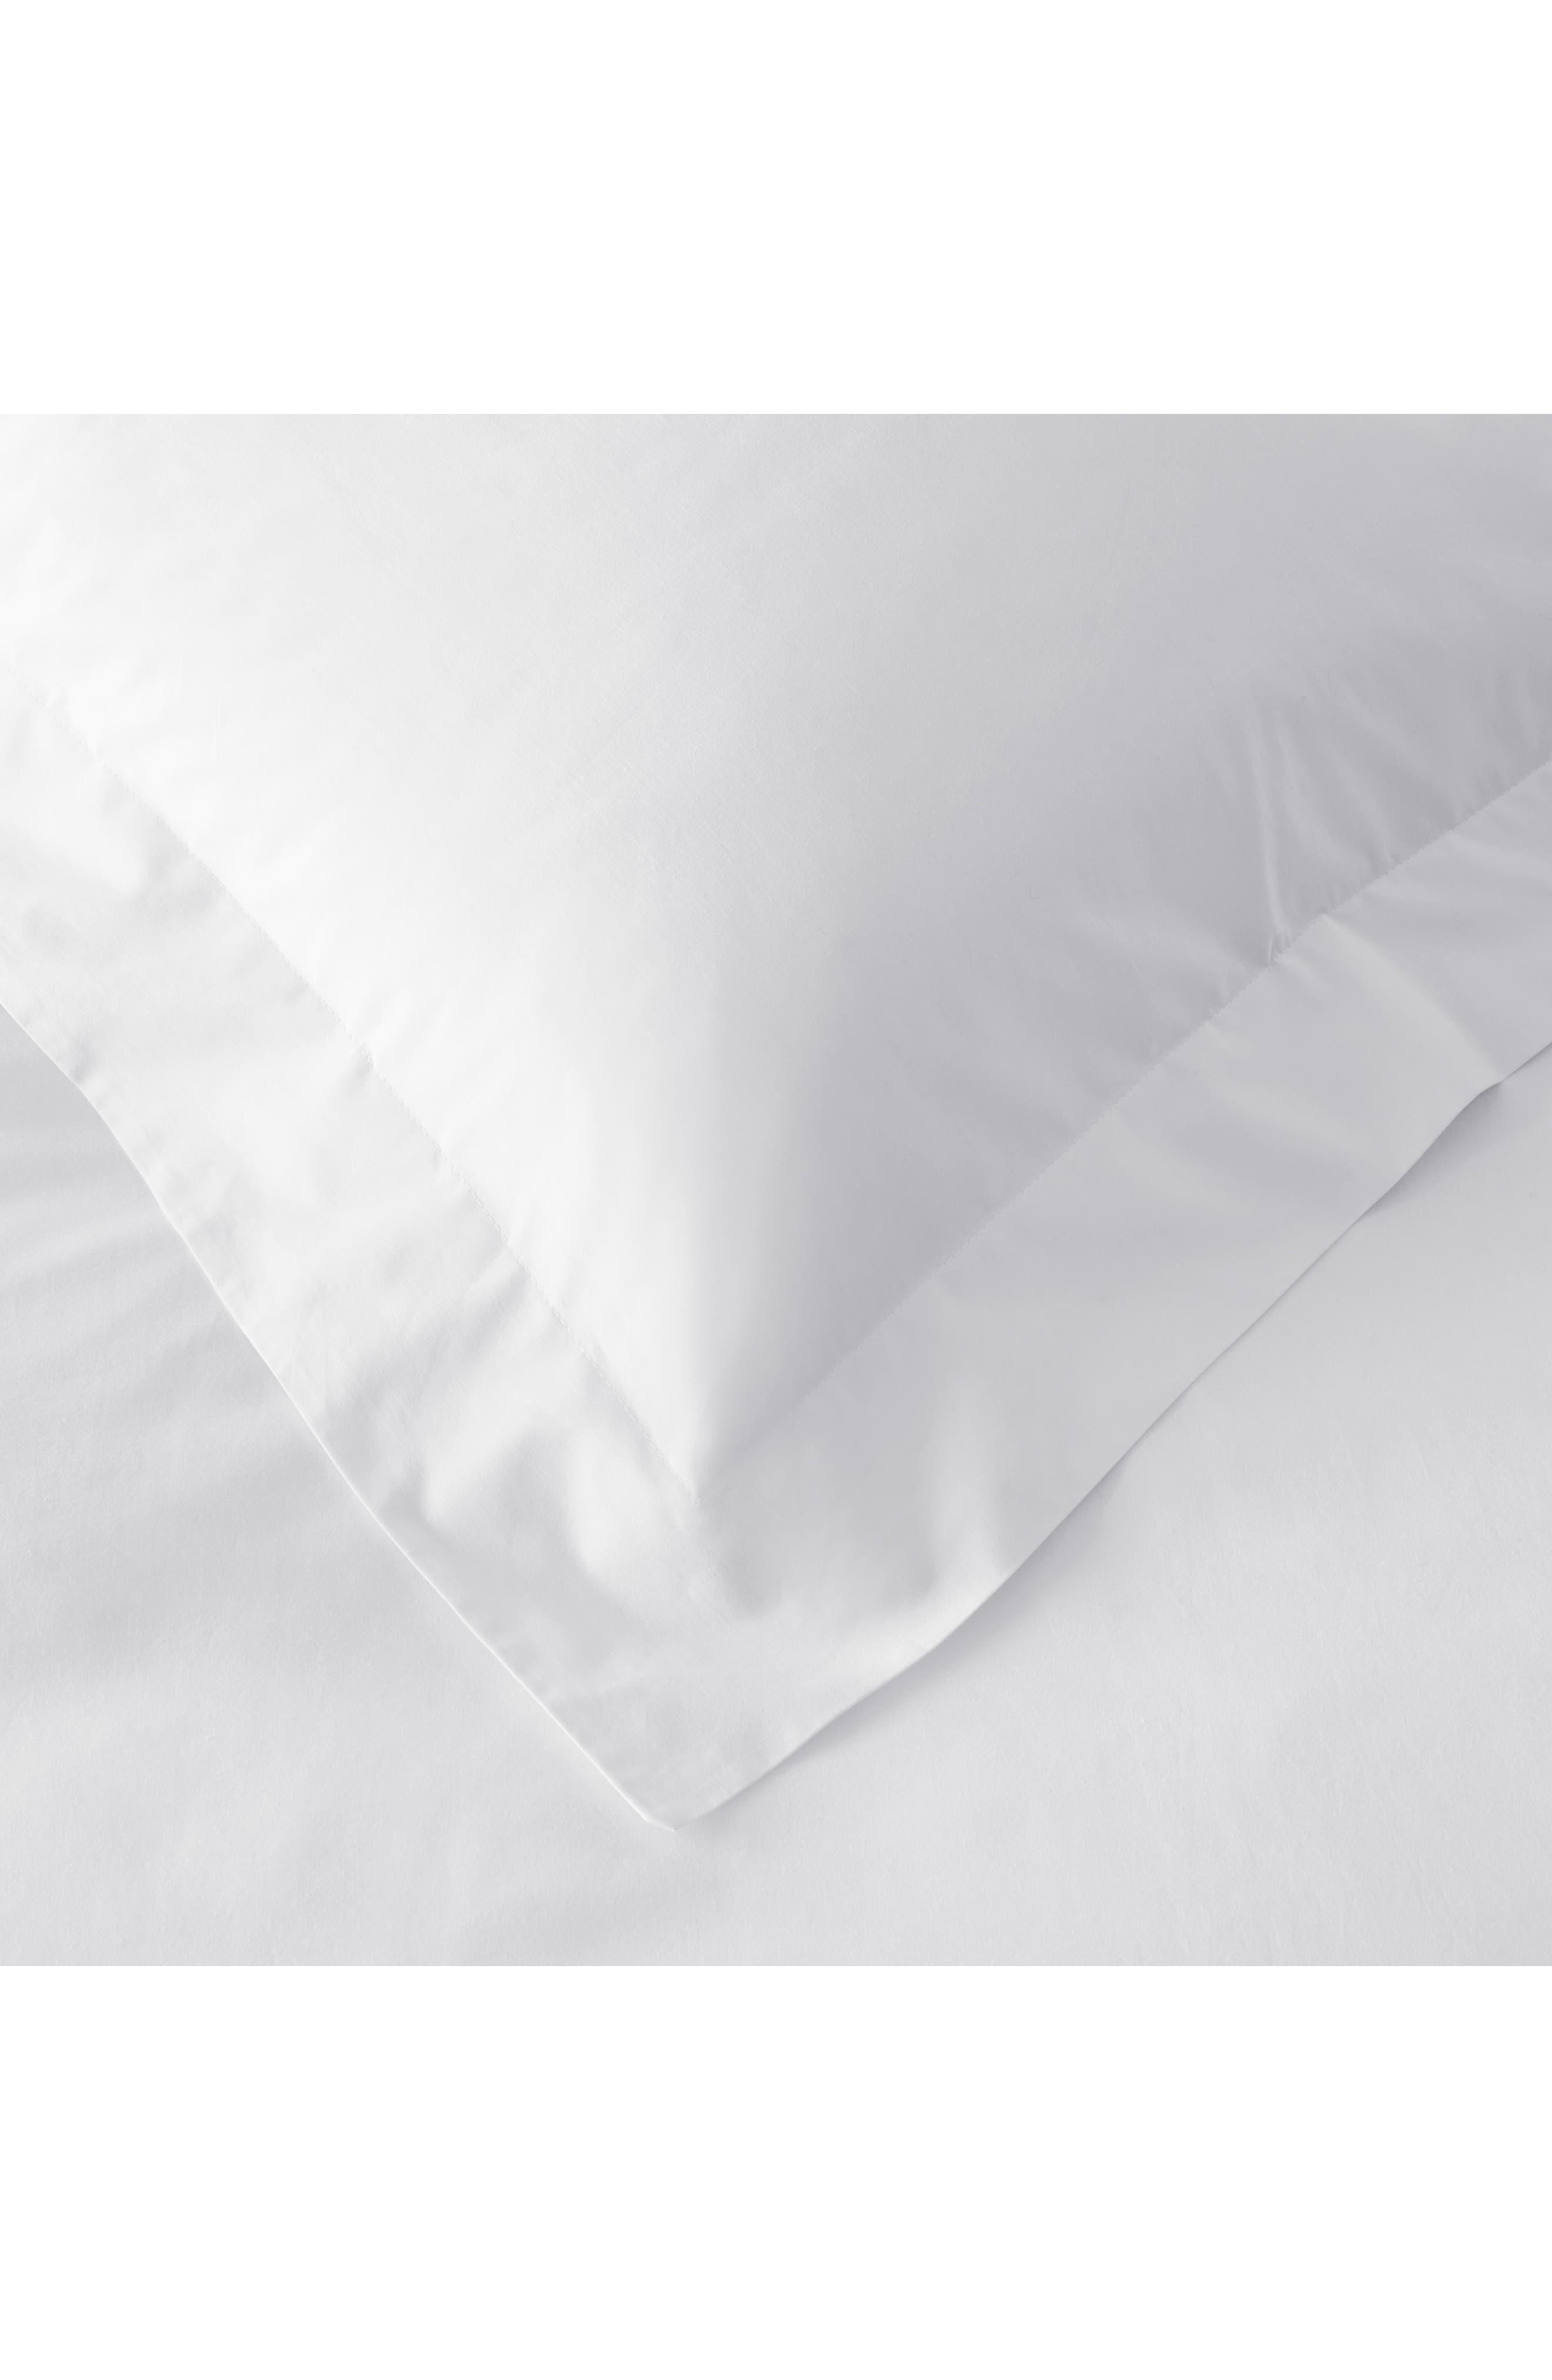 THE WHITE COMPANY,                             200 Thread Count Egyptian Cotton Oxford Set of 2 Shams,                             Alternate thumbnail 2, color,                             WHITE